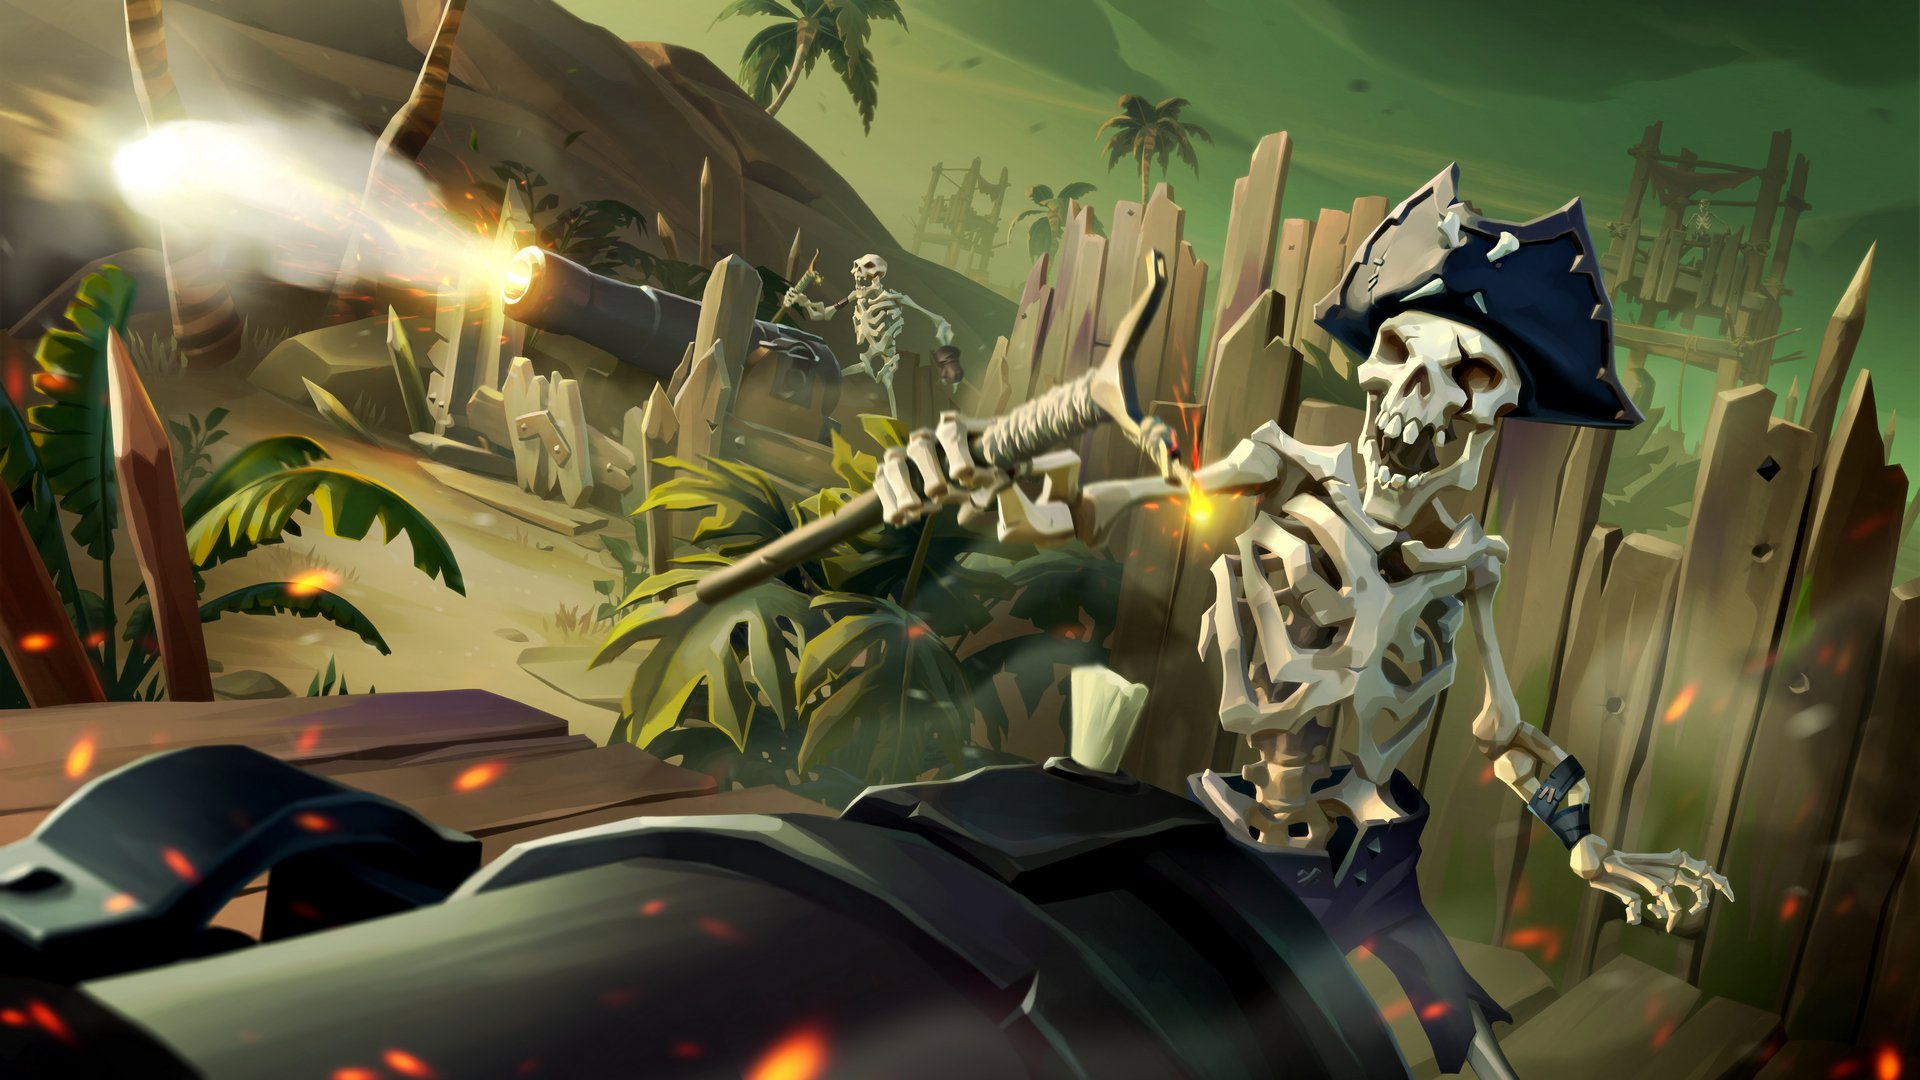 Sea of Thieves Halo Spartan ship set available through E3 2019